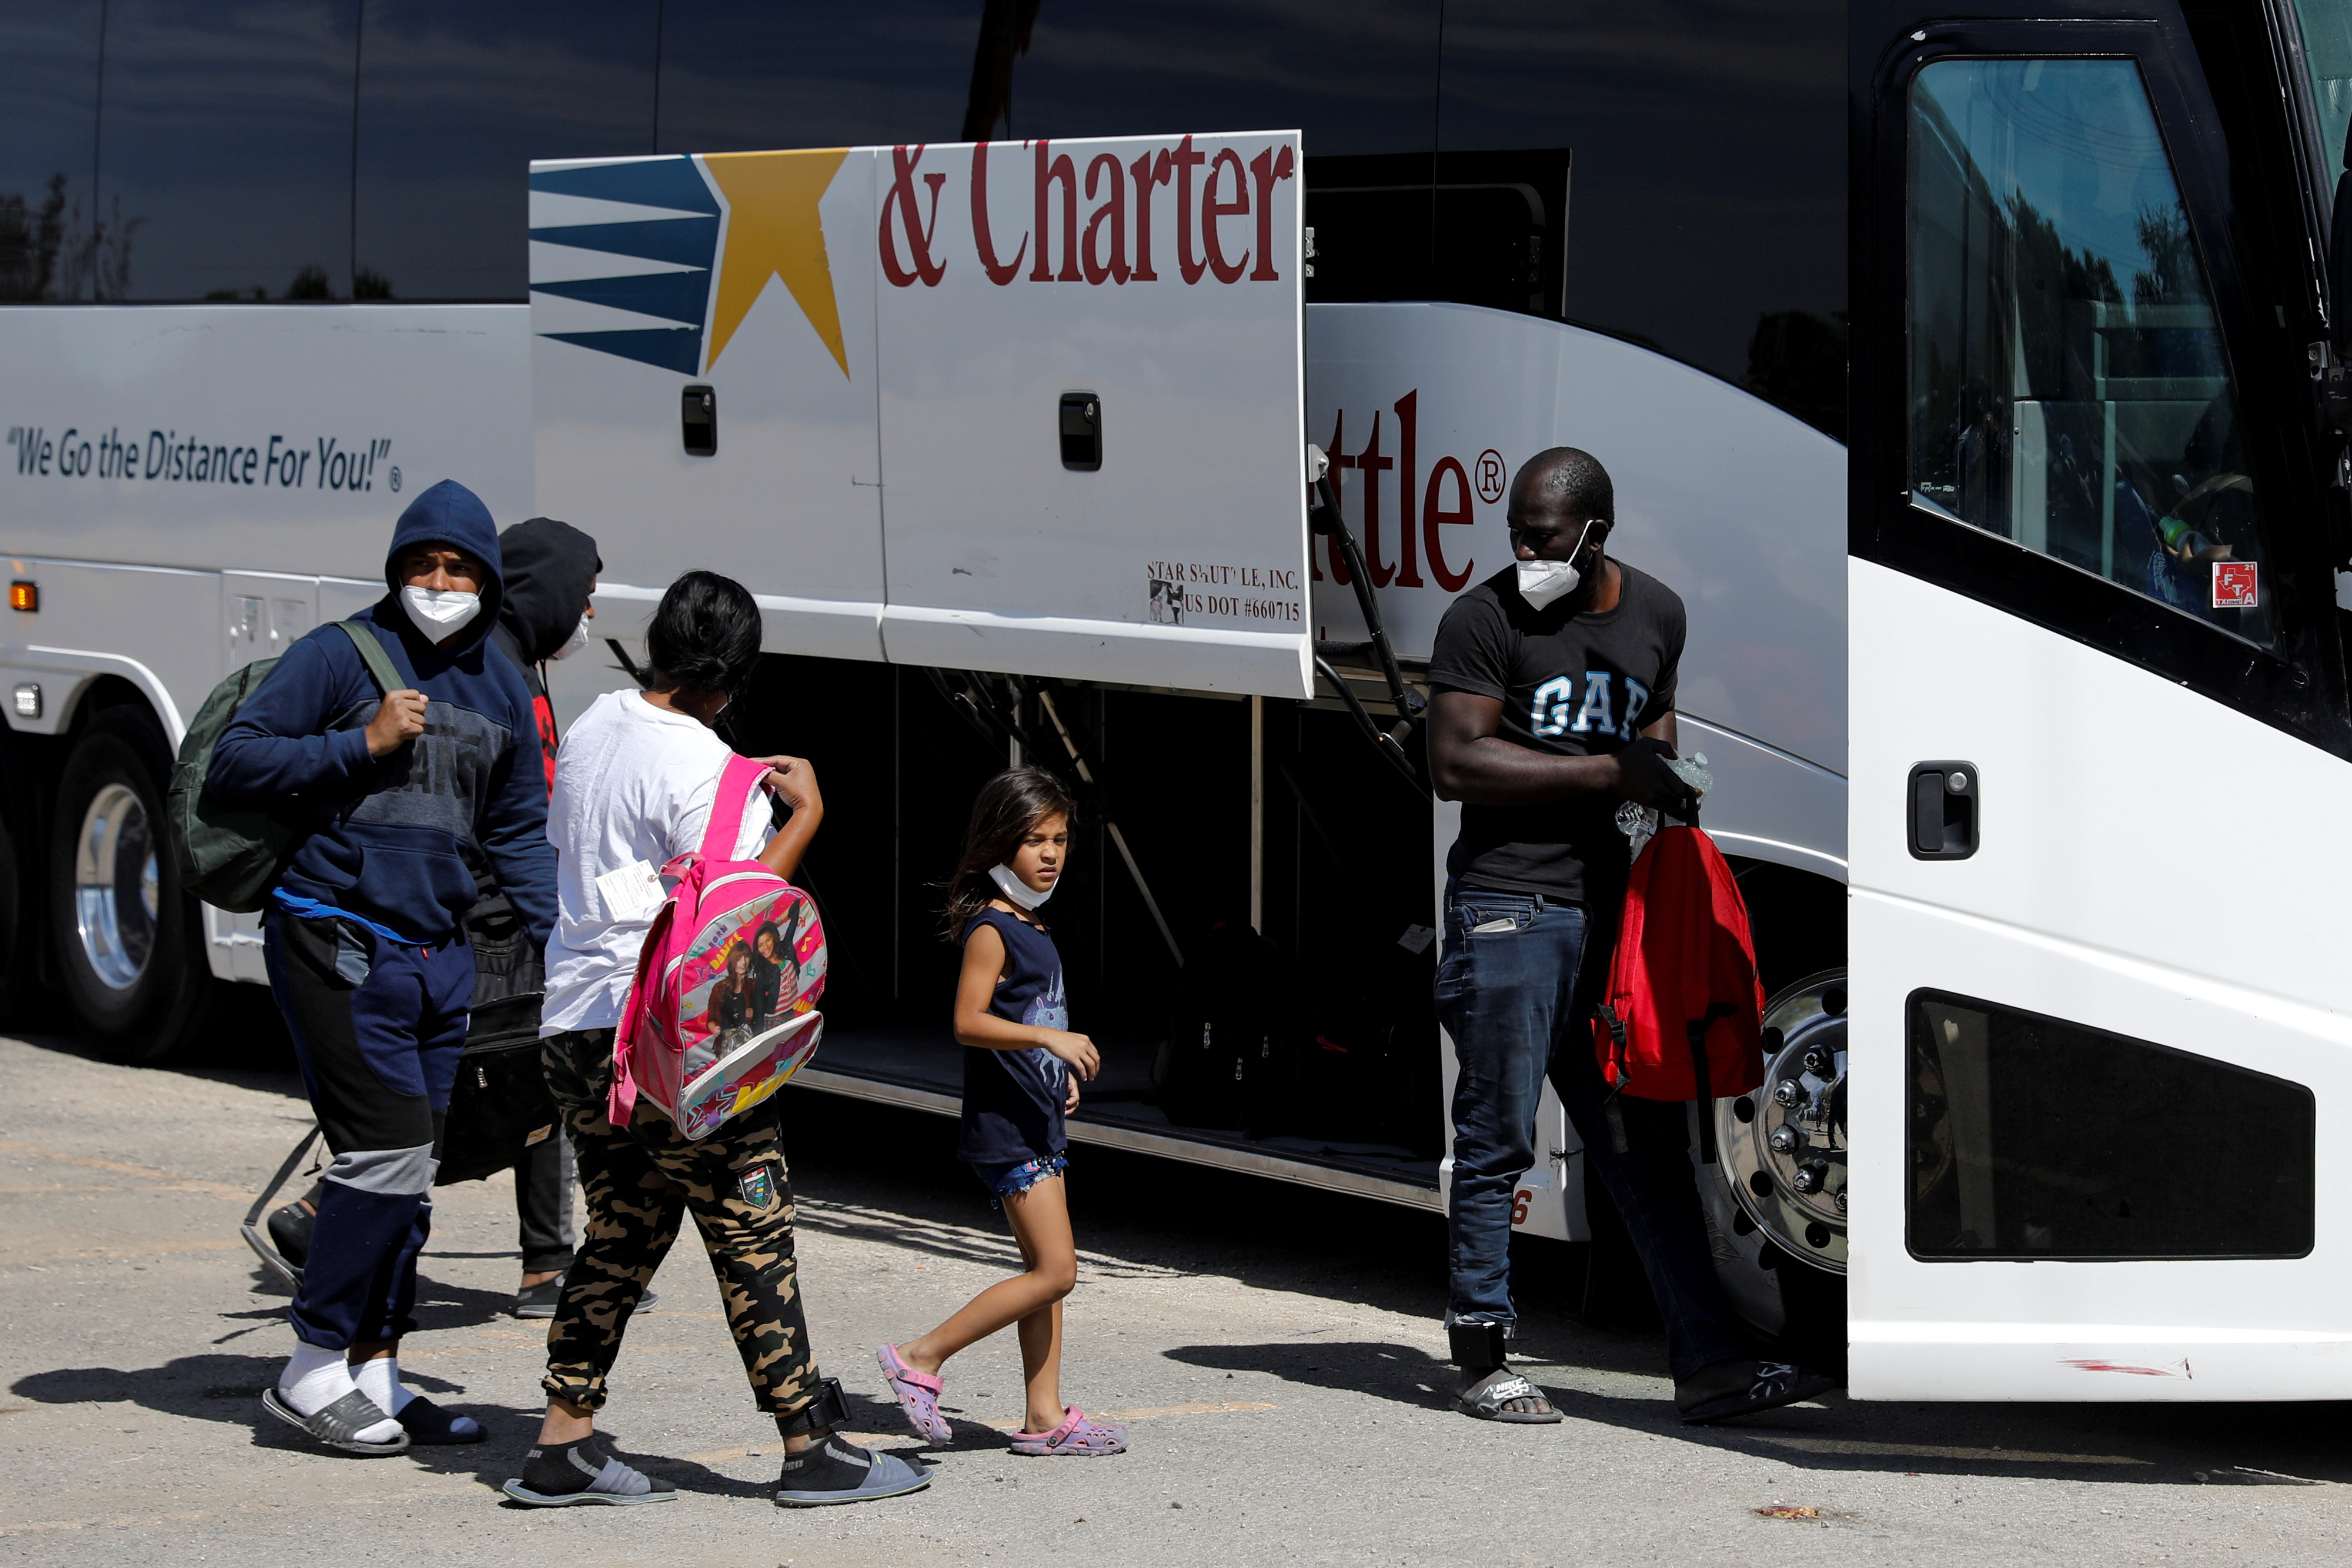 Migrants seeking asylum in the U.S. board a bus to Houston from Val Verde Border Humanitarian Coalition after being released from U.S. Customs and Border Protection, in Del Rio, Texas, U.S., September 22, 2021. REUTERS/Marco Bello